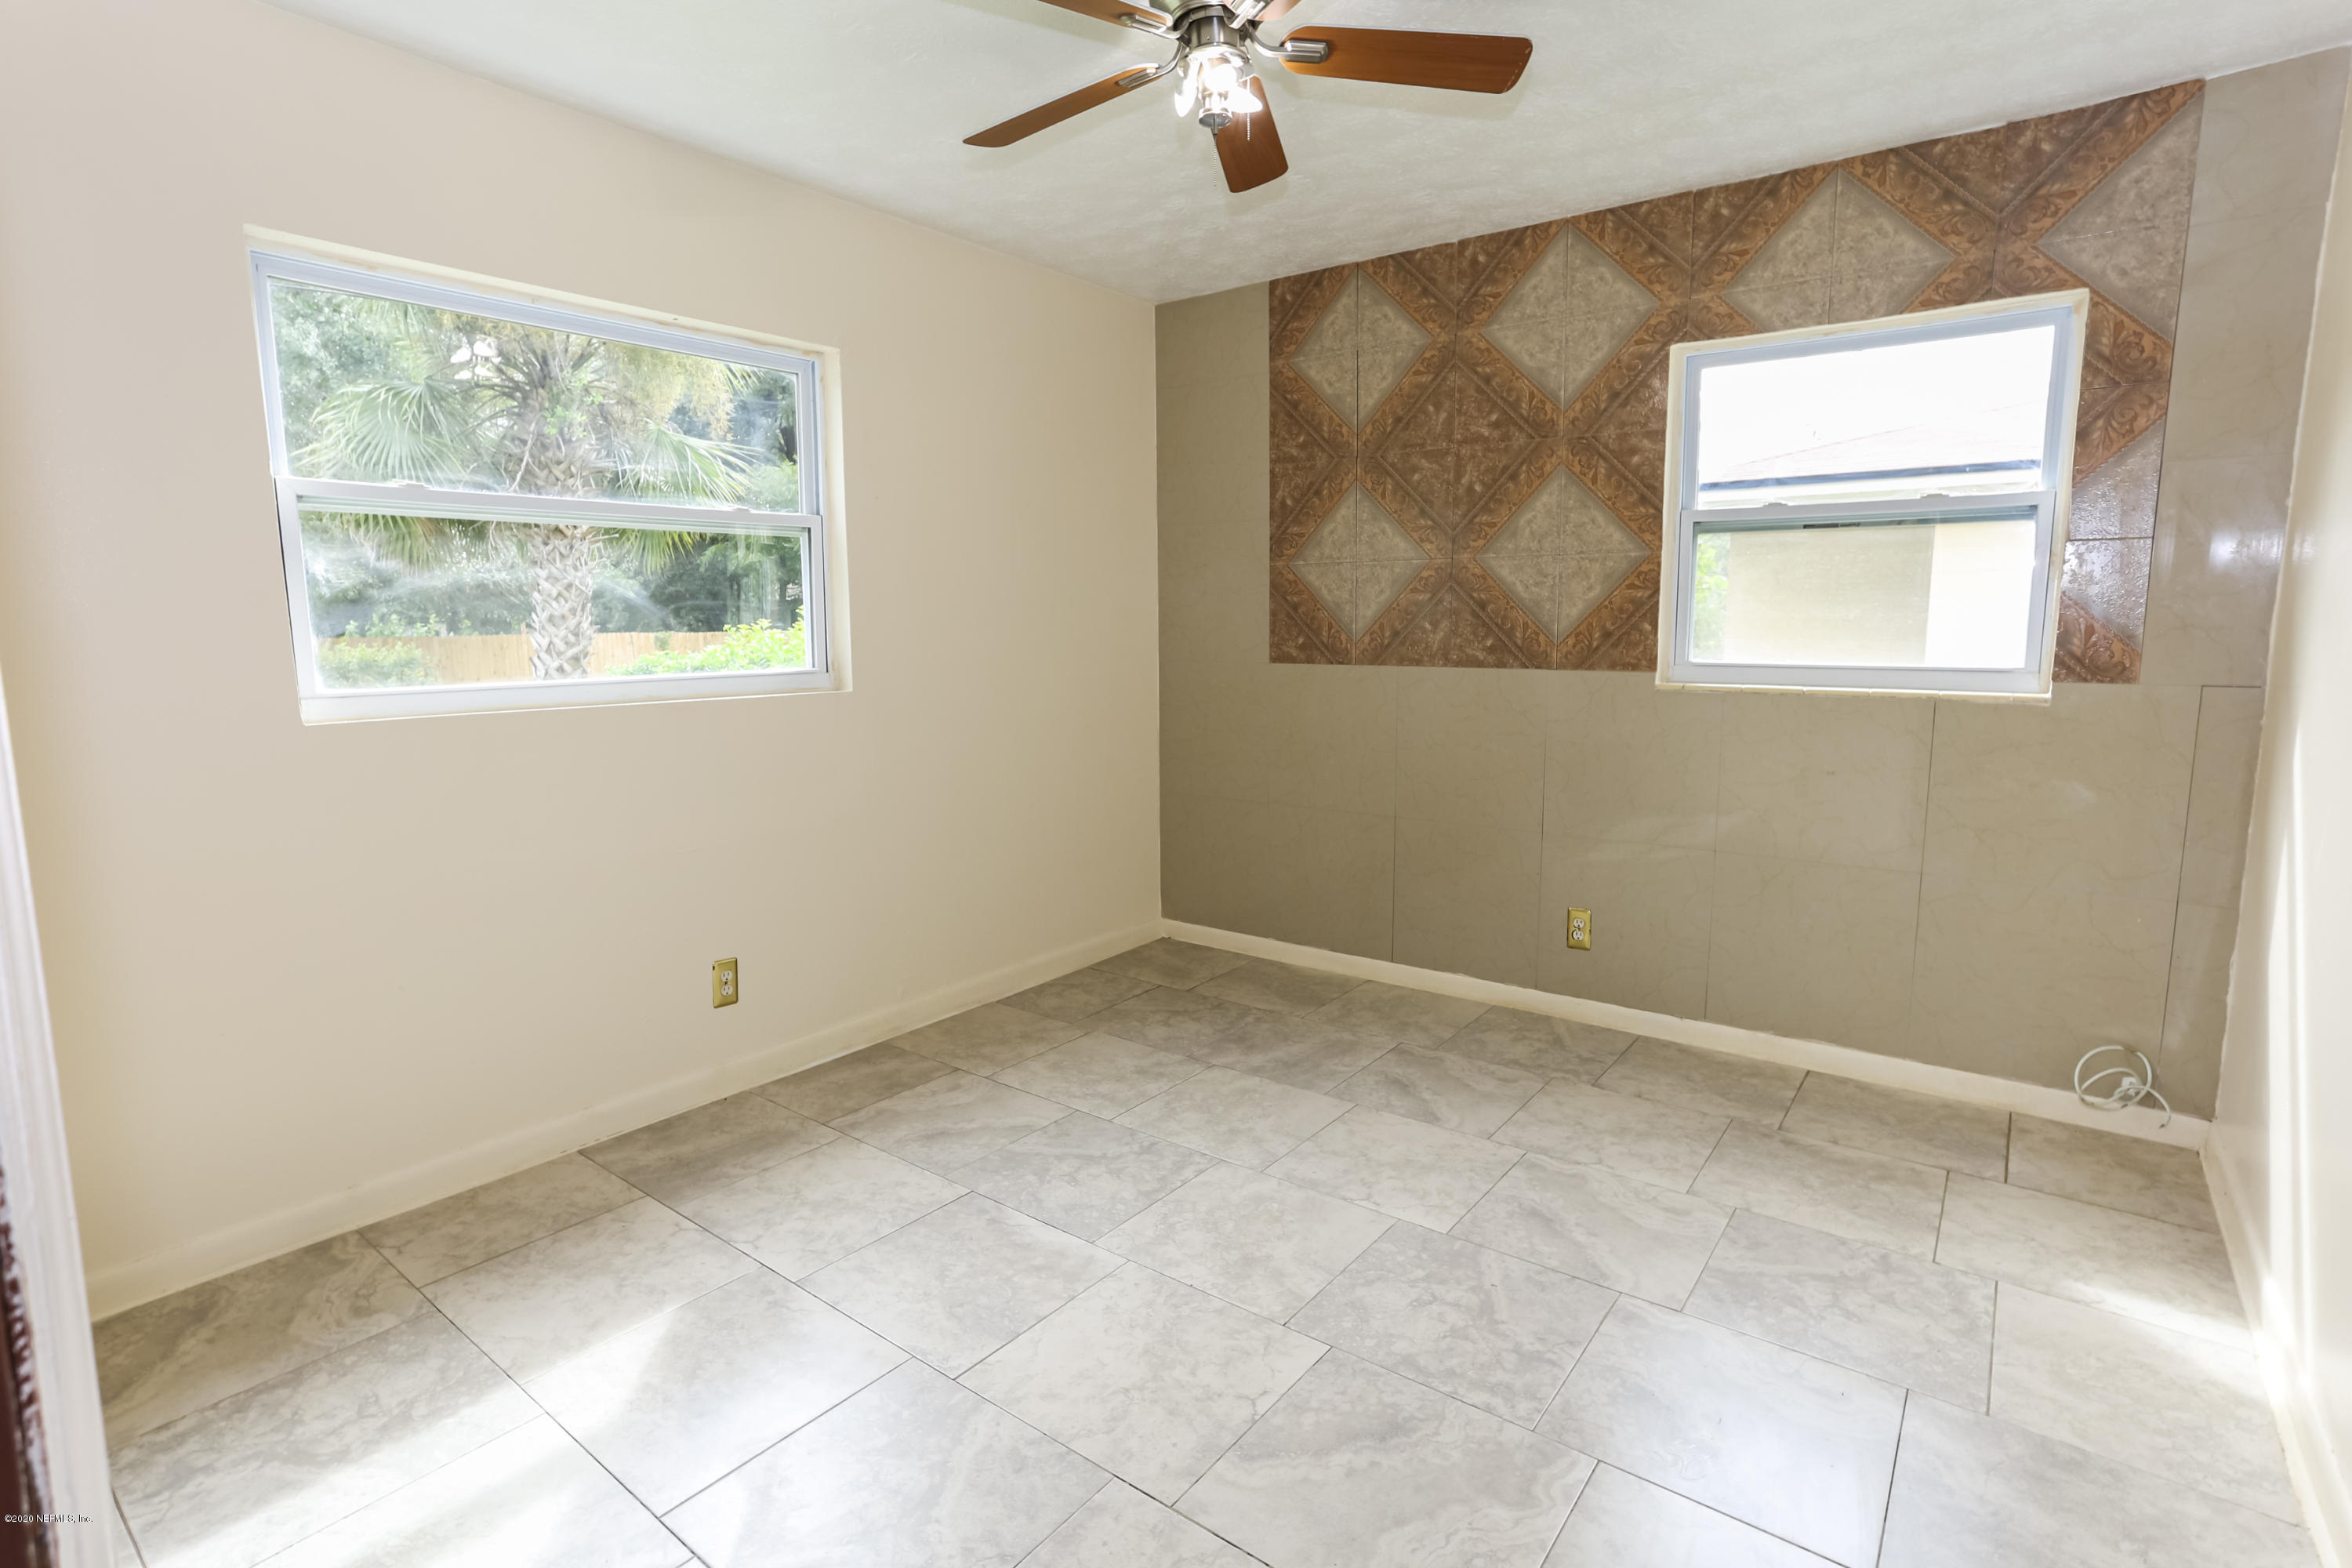 1847 11TH, JACKSONVILLE, FLORIDA 32209, 3 Bedrooms Bedrooms, ,1 BathroomBathrooms,Residential,For sale,11TH,1077316